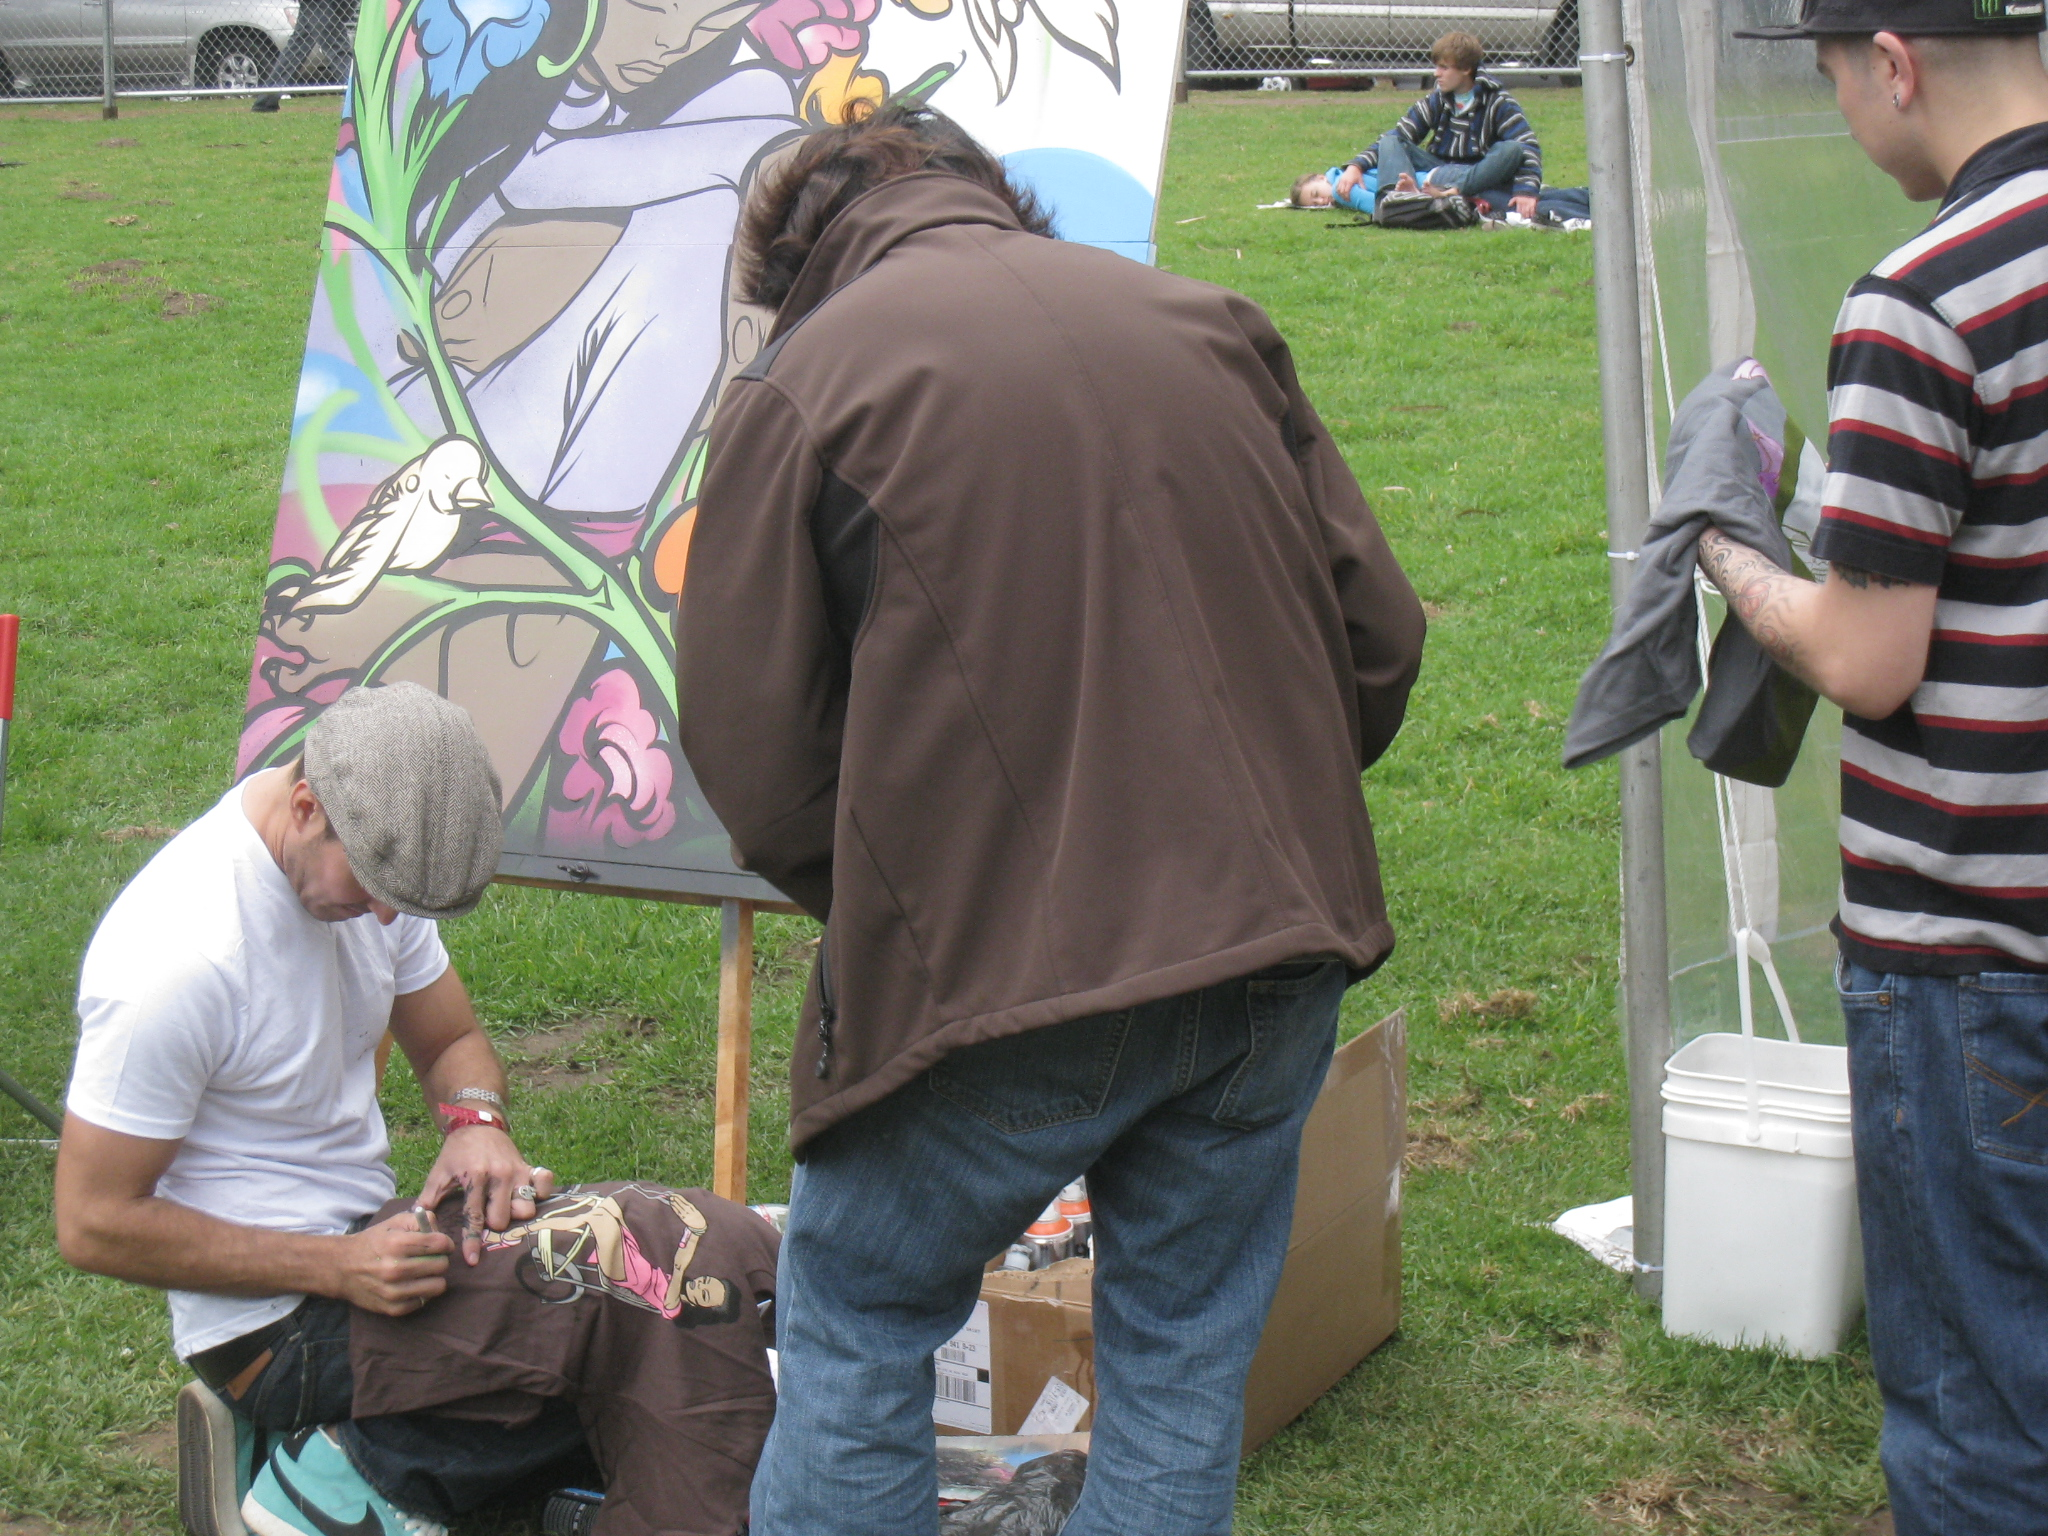 img 9579 Sam Flores, recap: live painting in Golden Gate Park upper playground Sam Flores power to the peaceful paint live painting graffiti fifty24sf gallery art